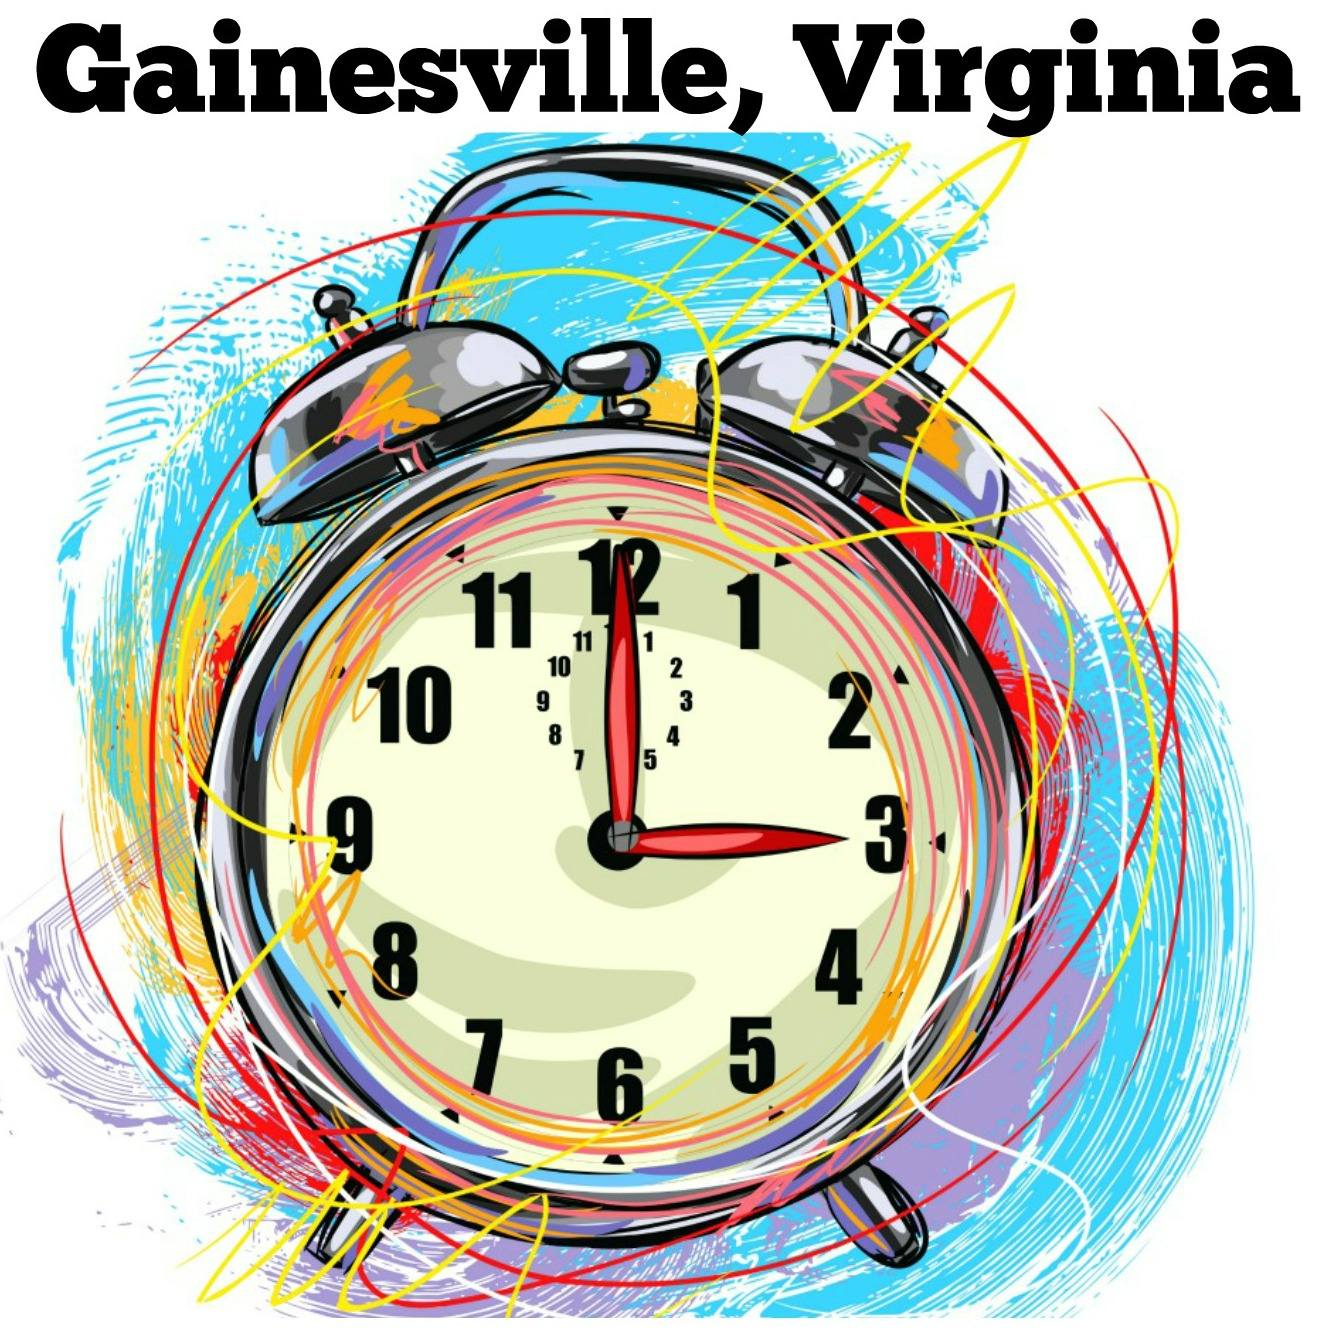 Homes for Sale in Gainesville, Virginia